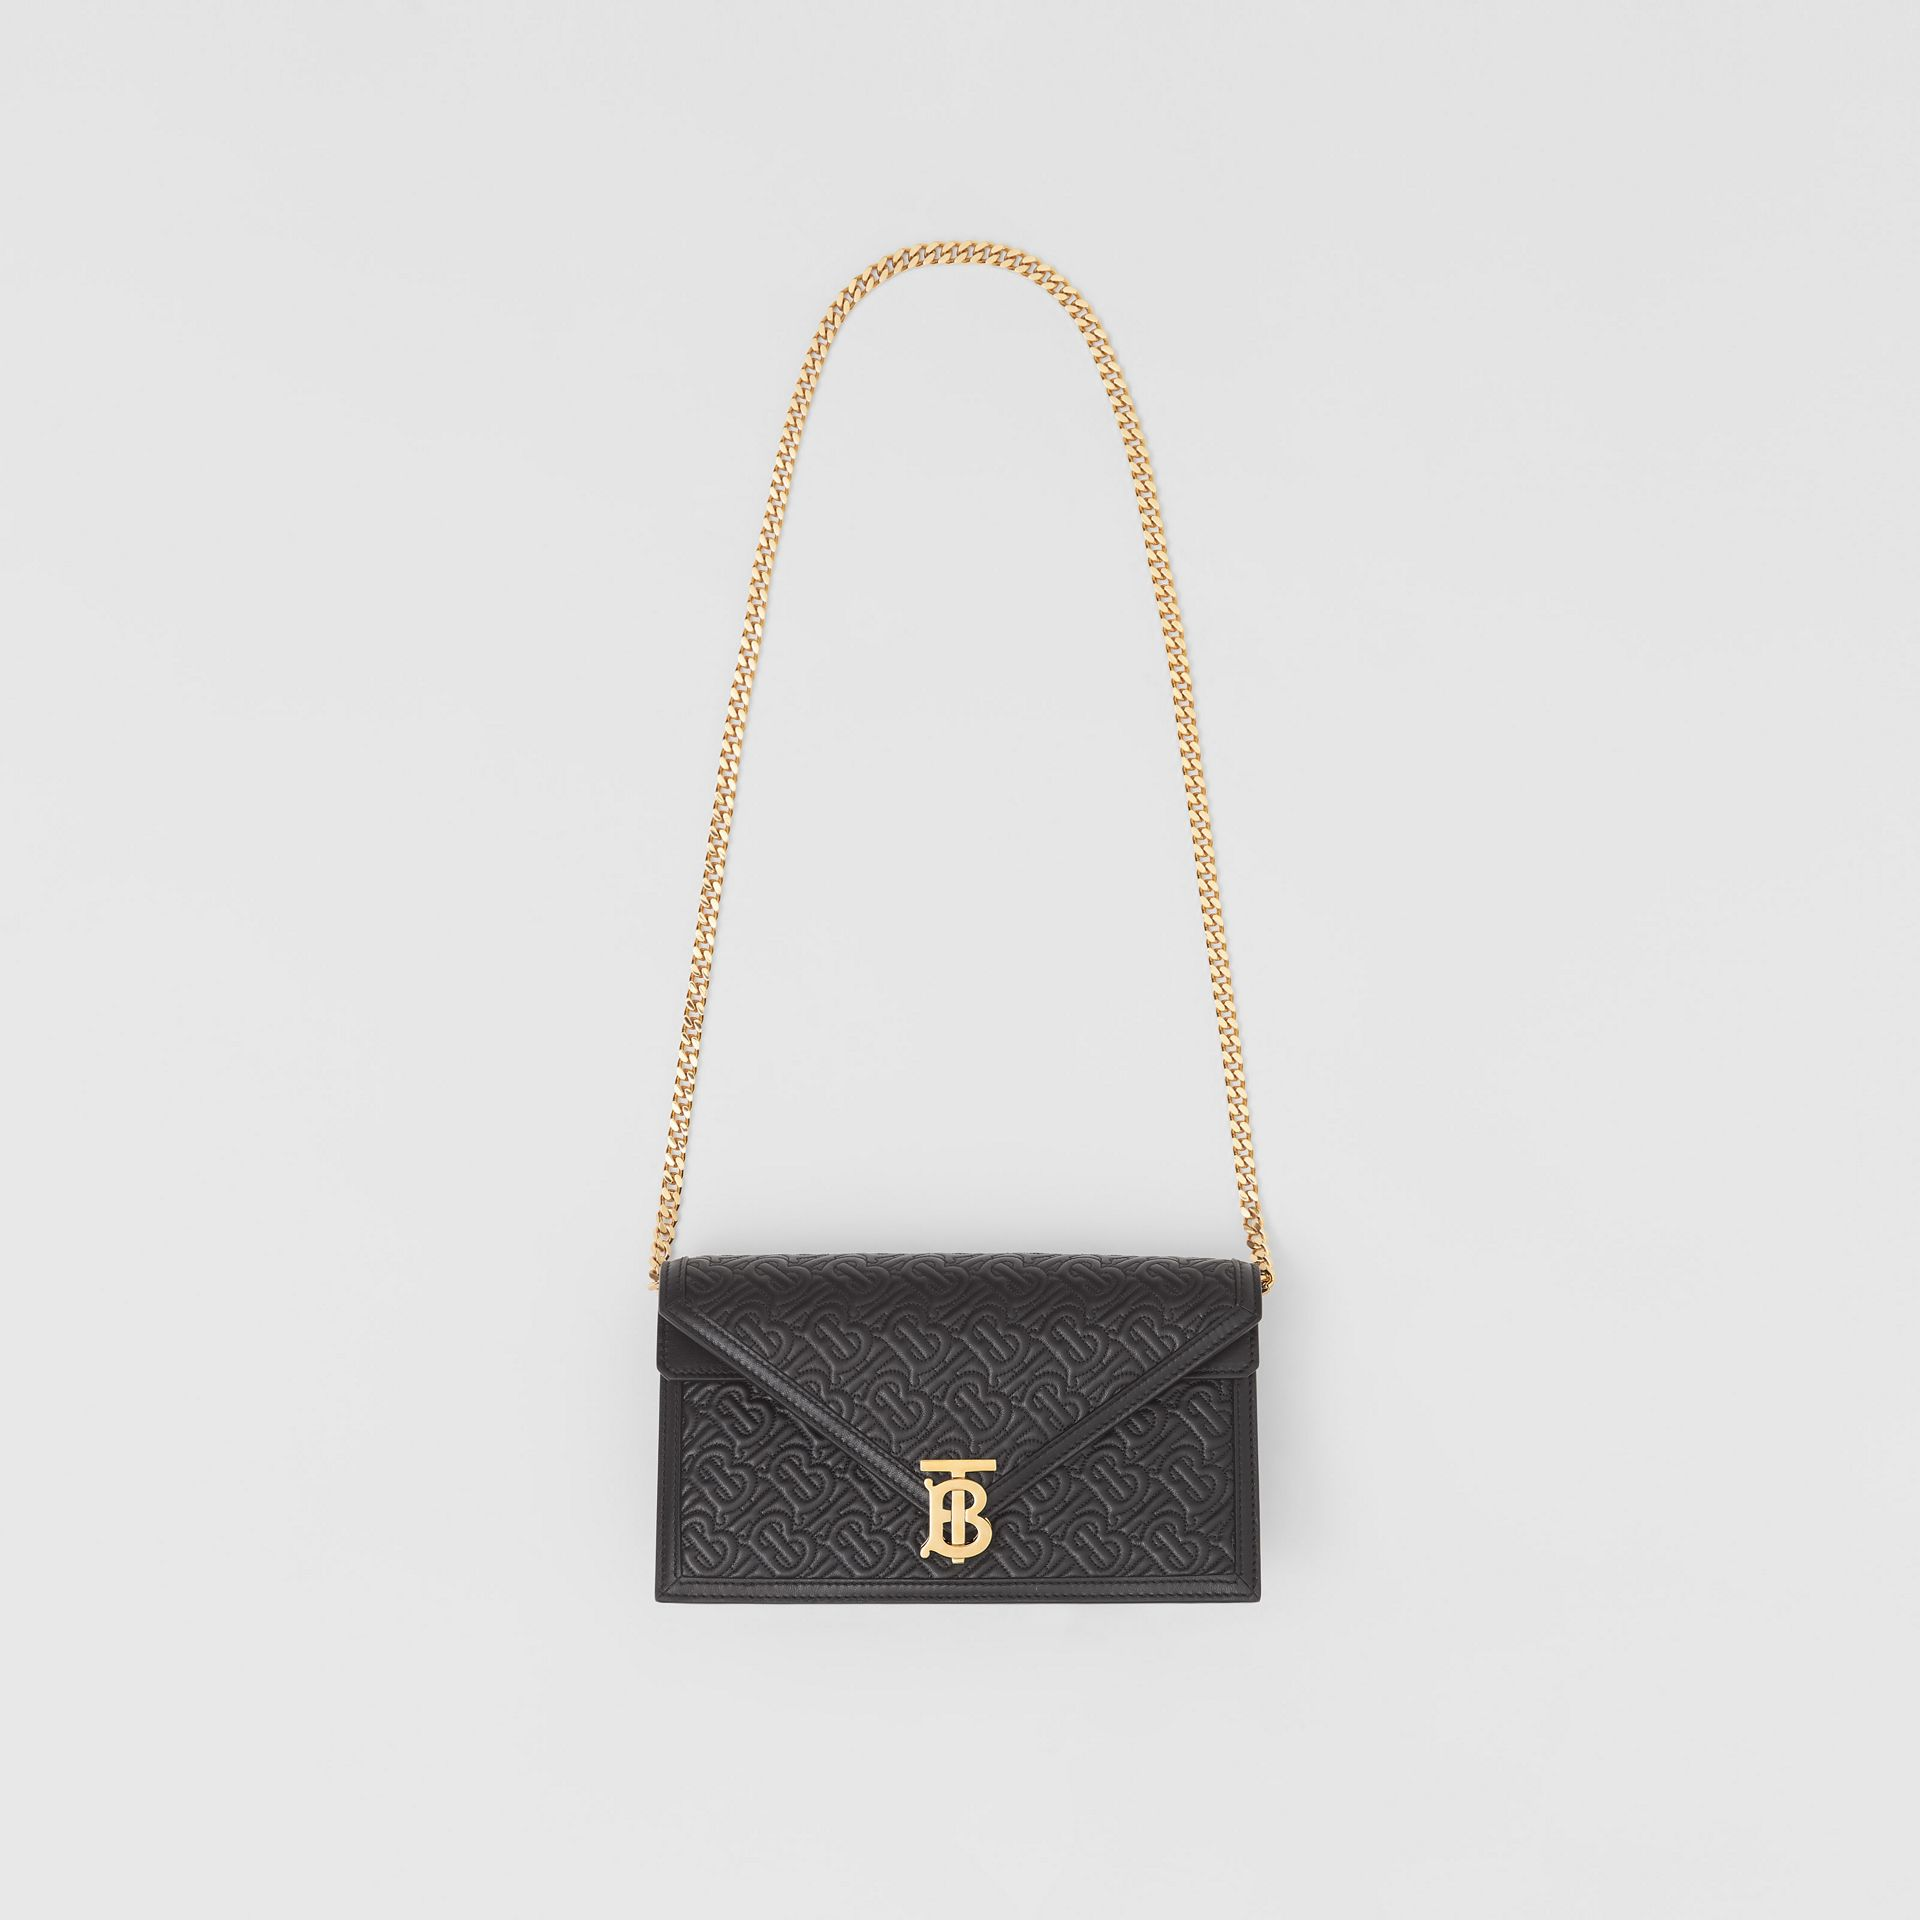 Small Quilted Monogram TB Envelope Clutch in Black - Women | Burberry - gallery image 2